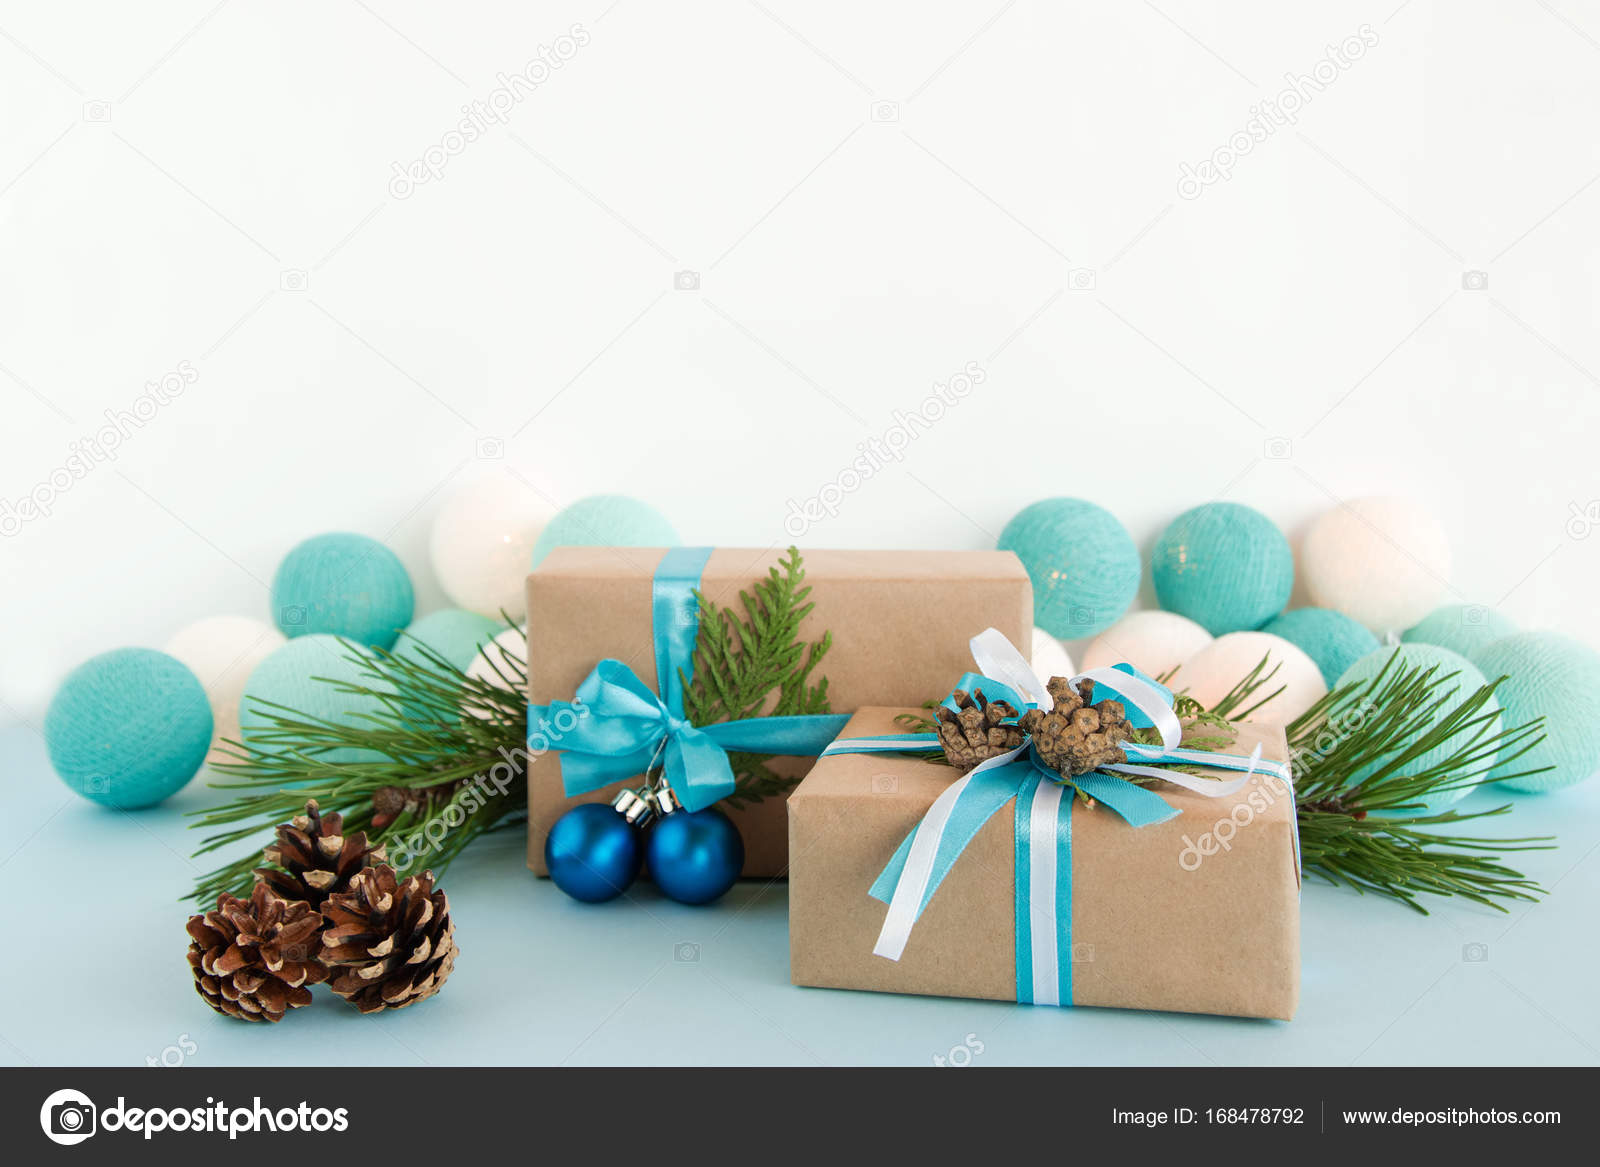 Two Christmas t boxes wrapped of craft paper blue and white ribbons decorated of fir branches pine cones and Christmas balls on the blue and